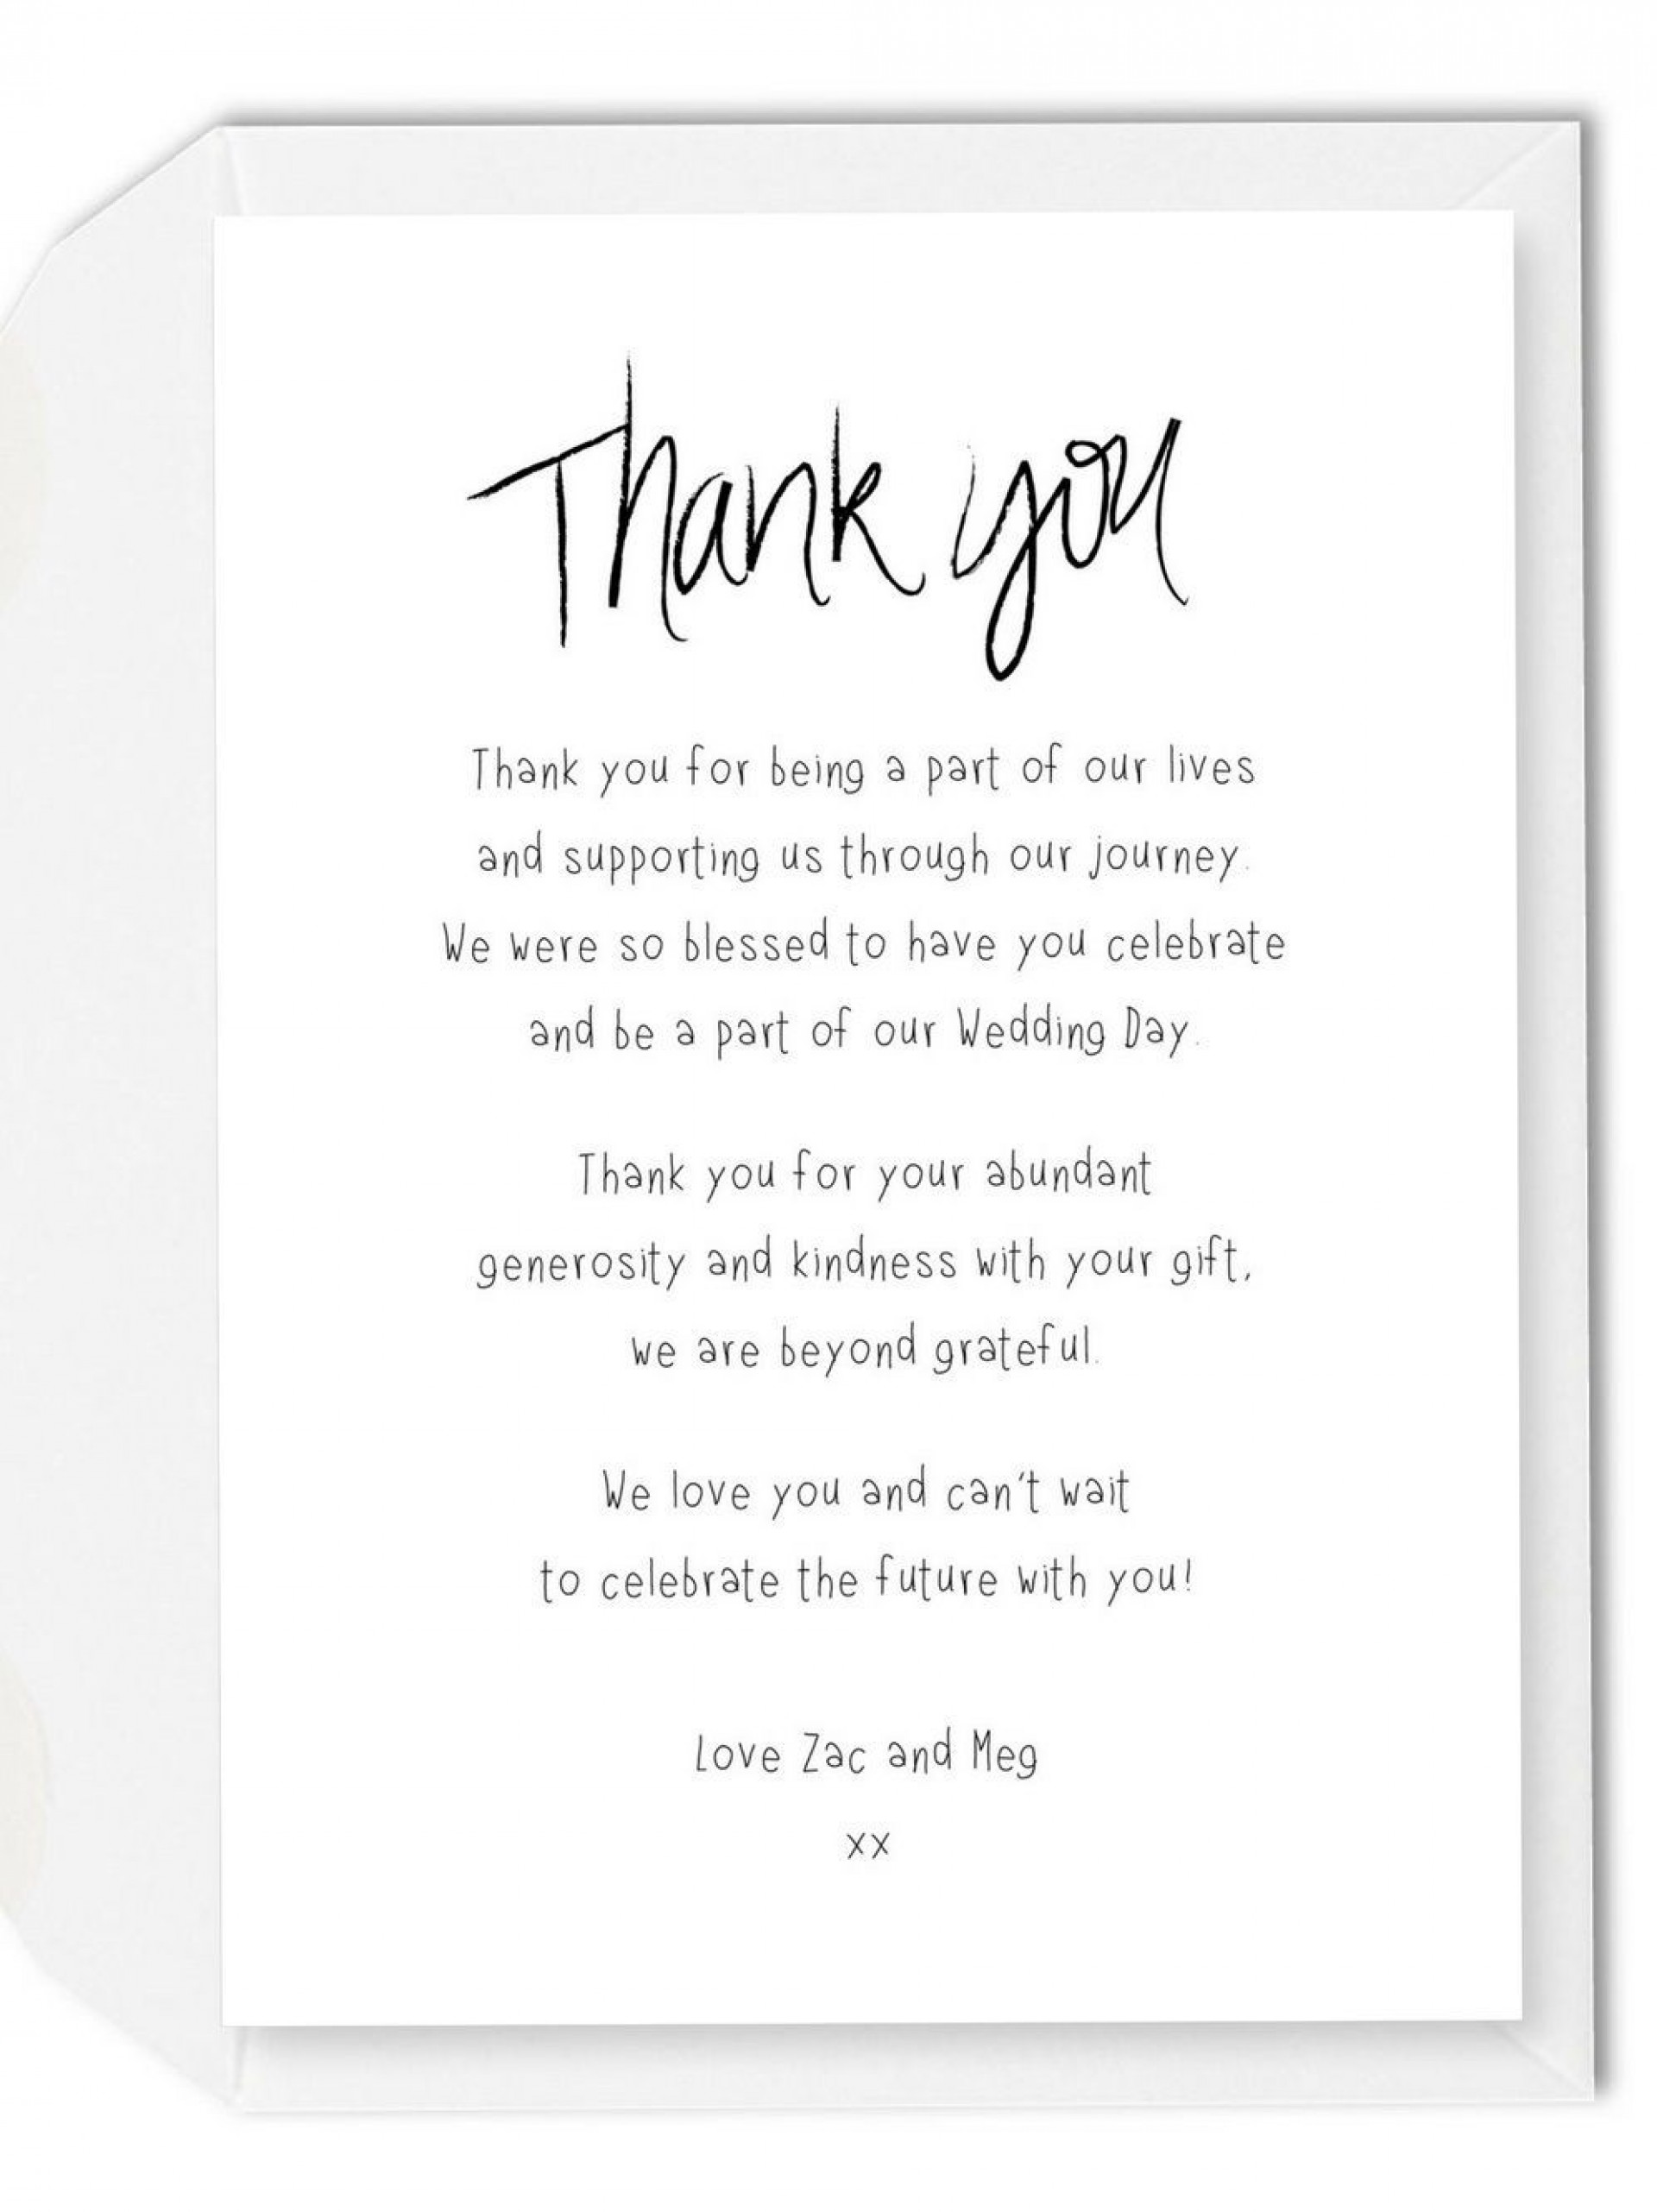 001 Unique Thank You Note Template Wedding Shower High Resolution  Bridal Card Sample Wording1920